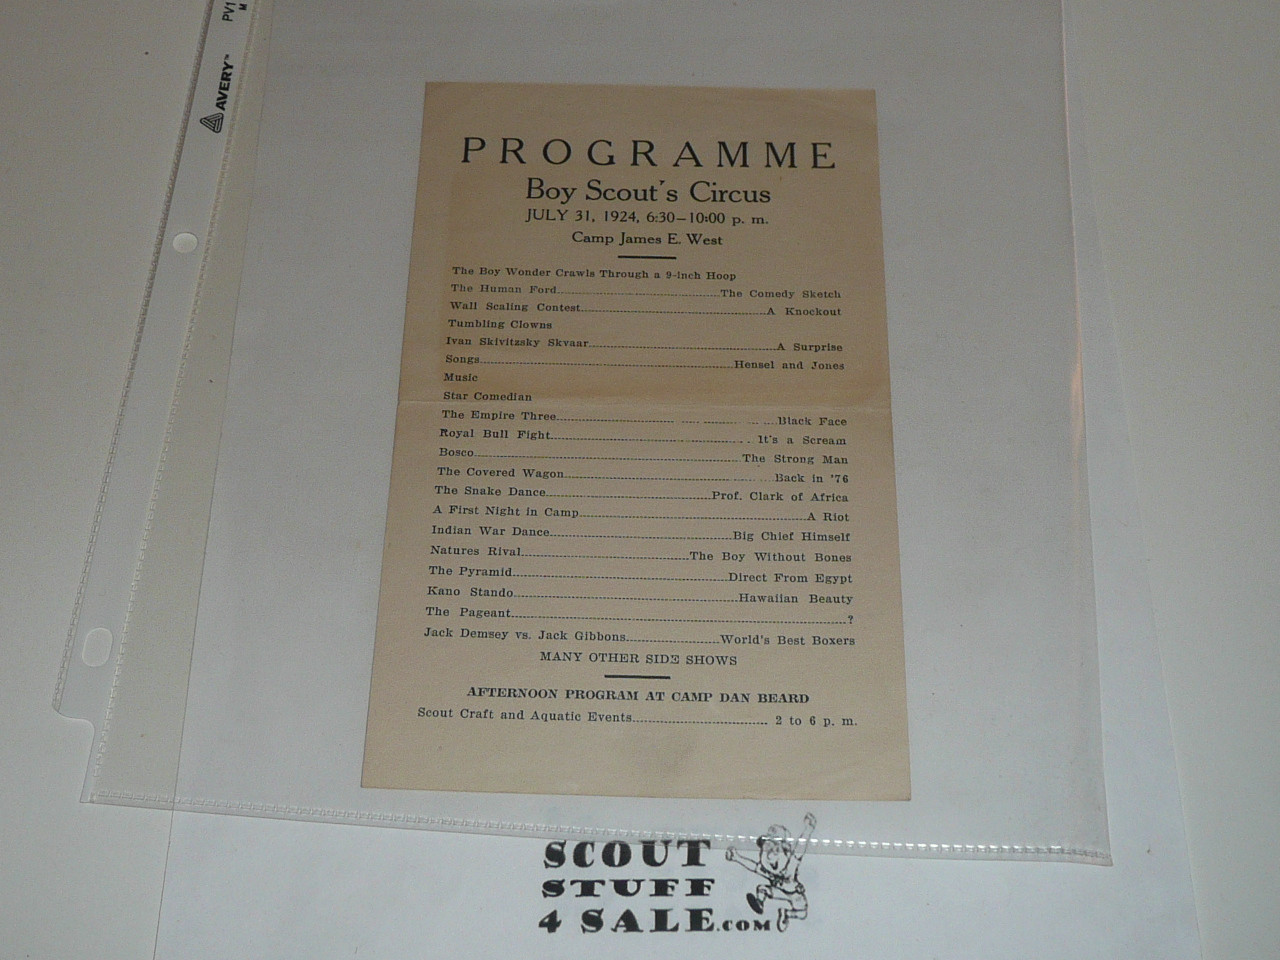 1924 Boy Scout Circus Program at Camp James E. West, Boy Scouts of America